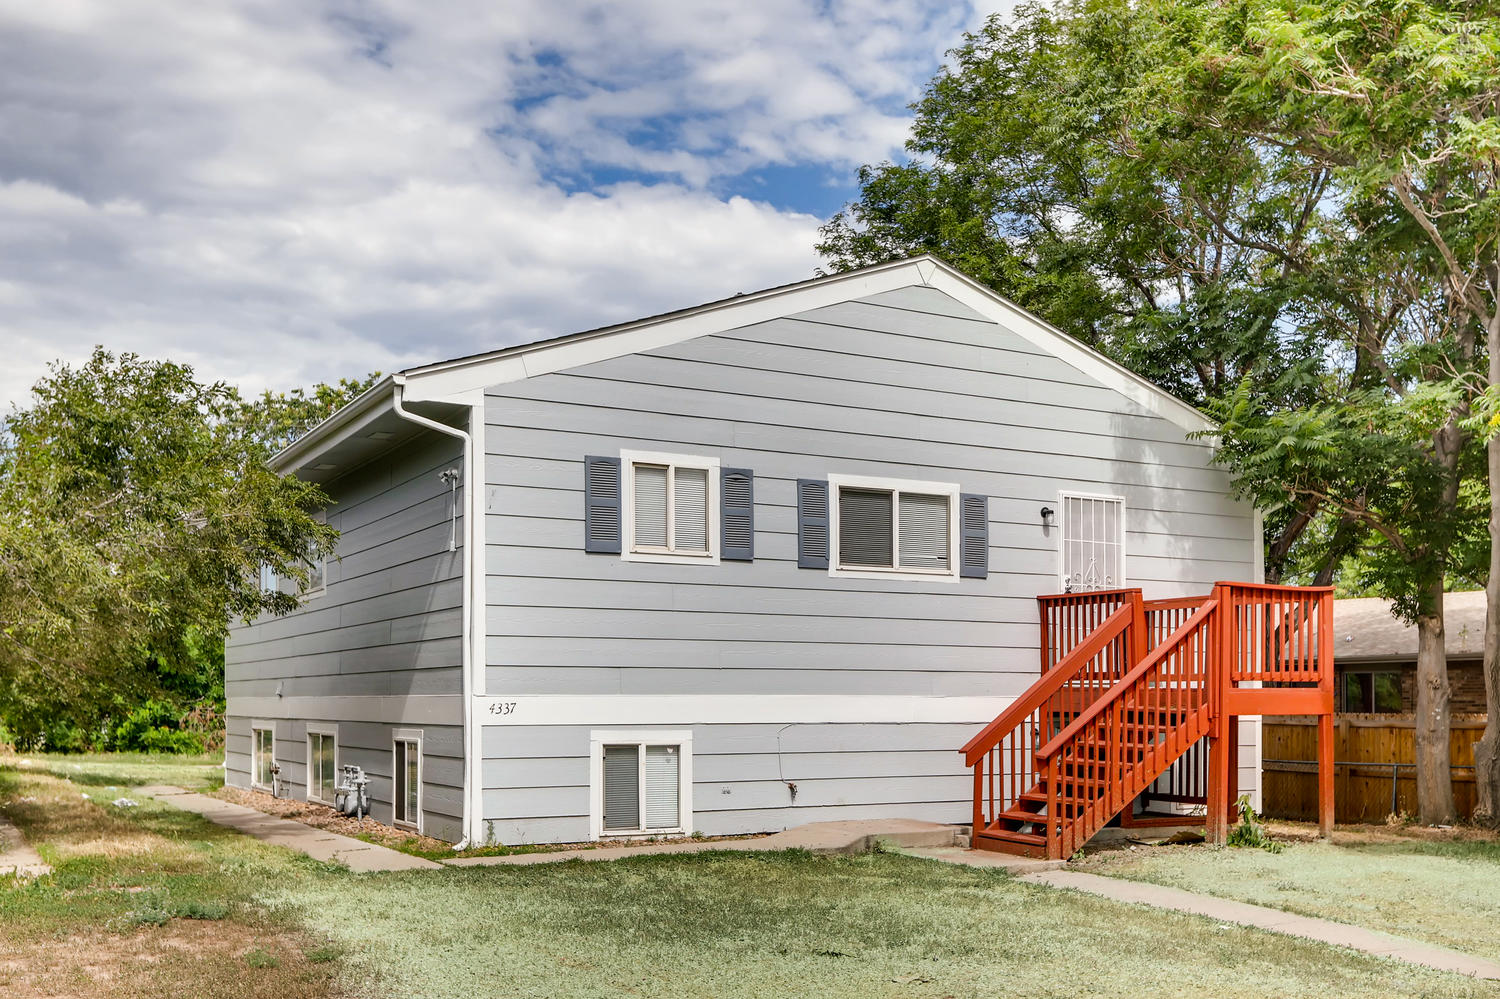 REAL ESTATE LISTING: 4337 Cook St Denver Exterior Front